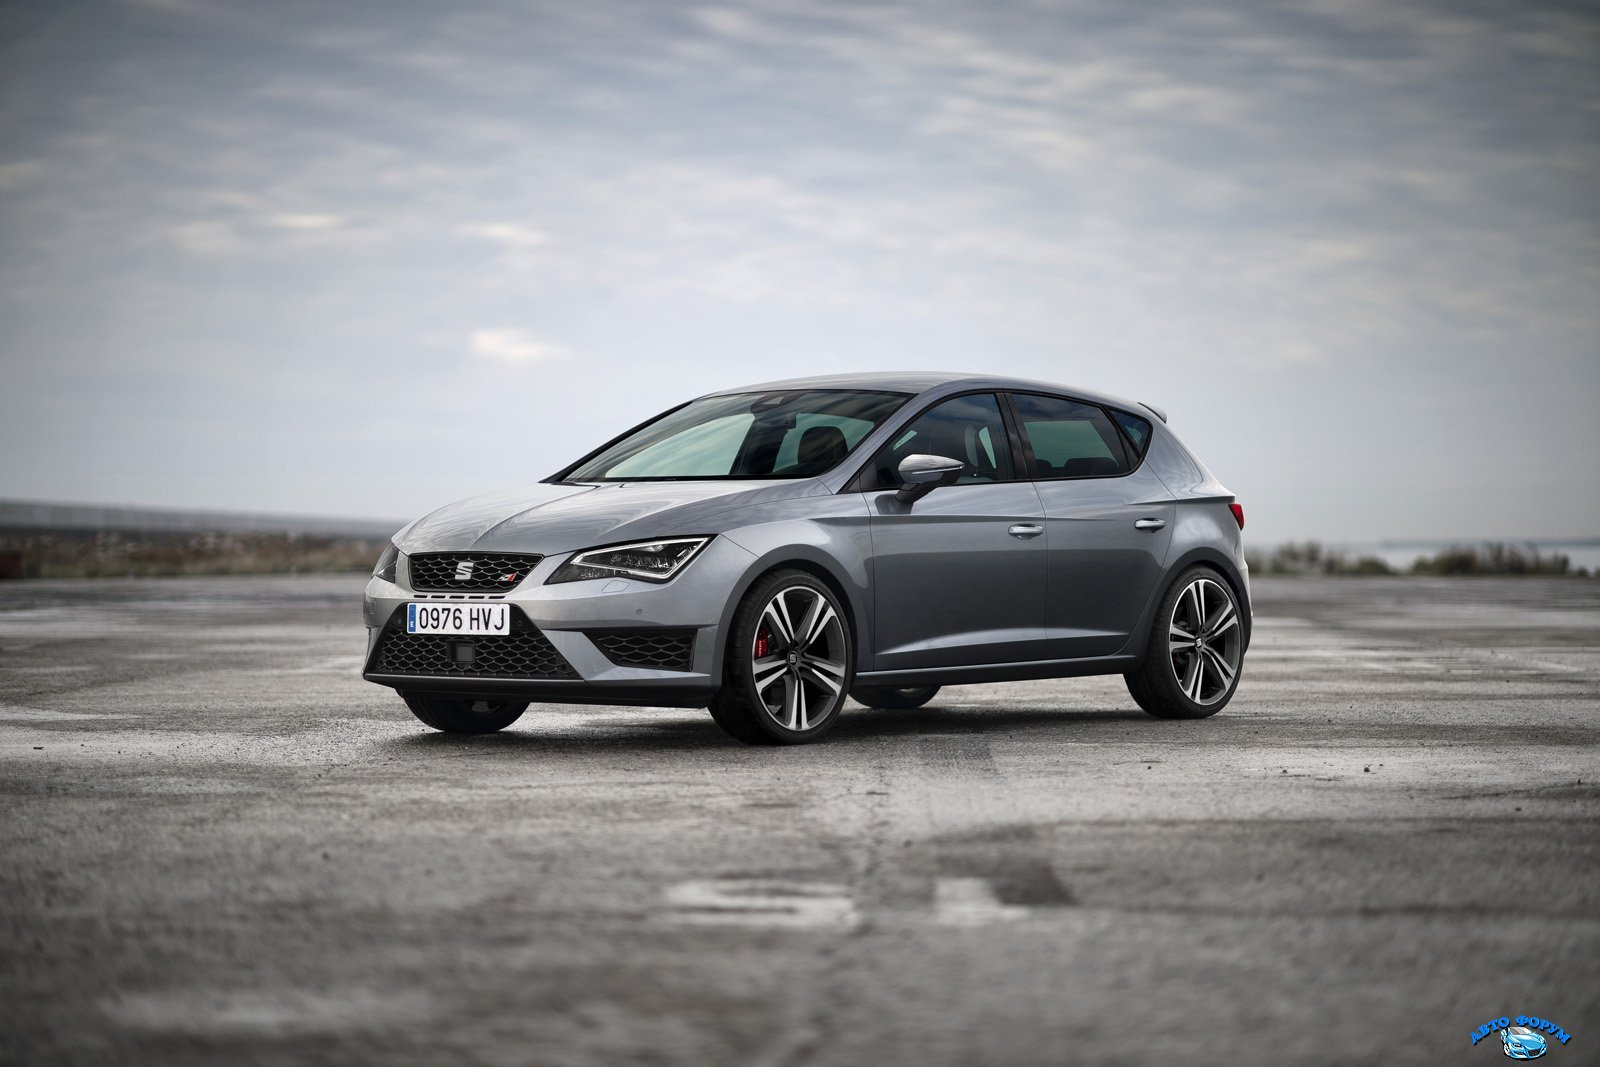 new-photos-and-videos-show-280-hp-seat-leon-cupra-in-detail_4.jpg